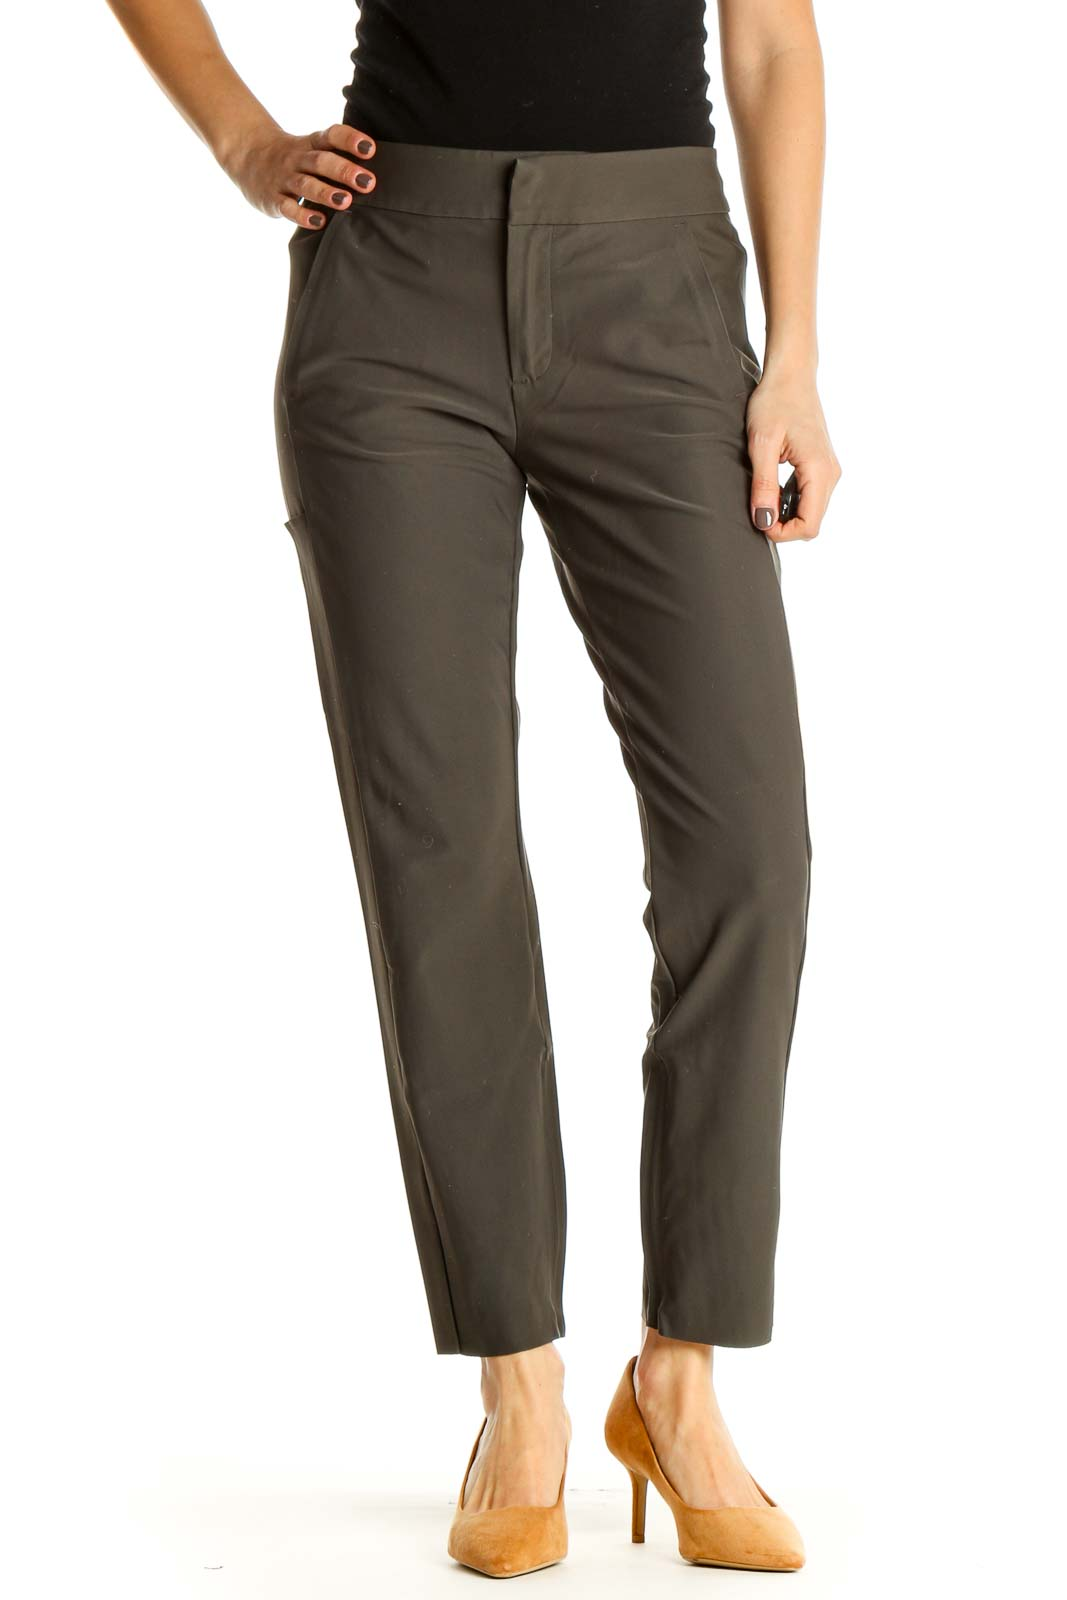 Brown Solid All Day Wear Trousers Front